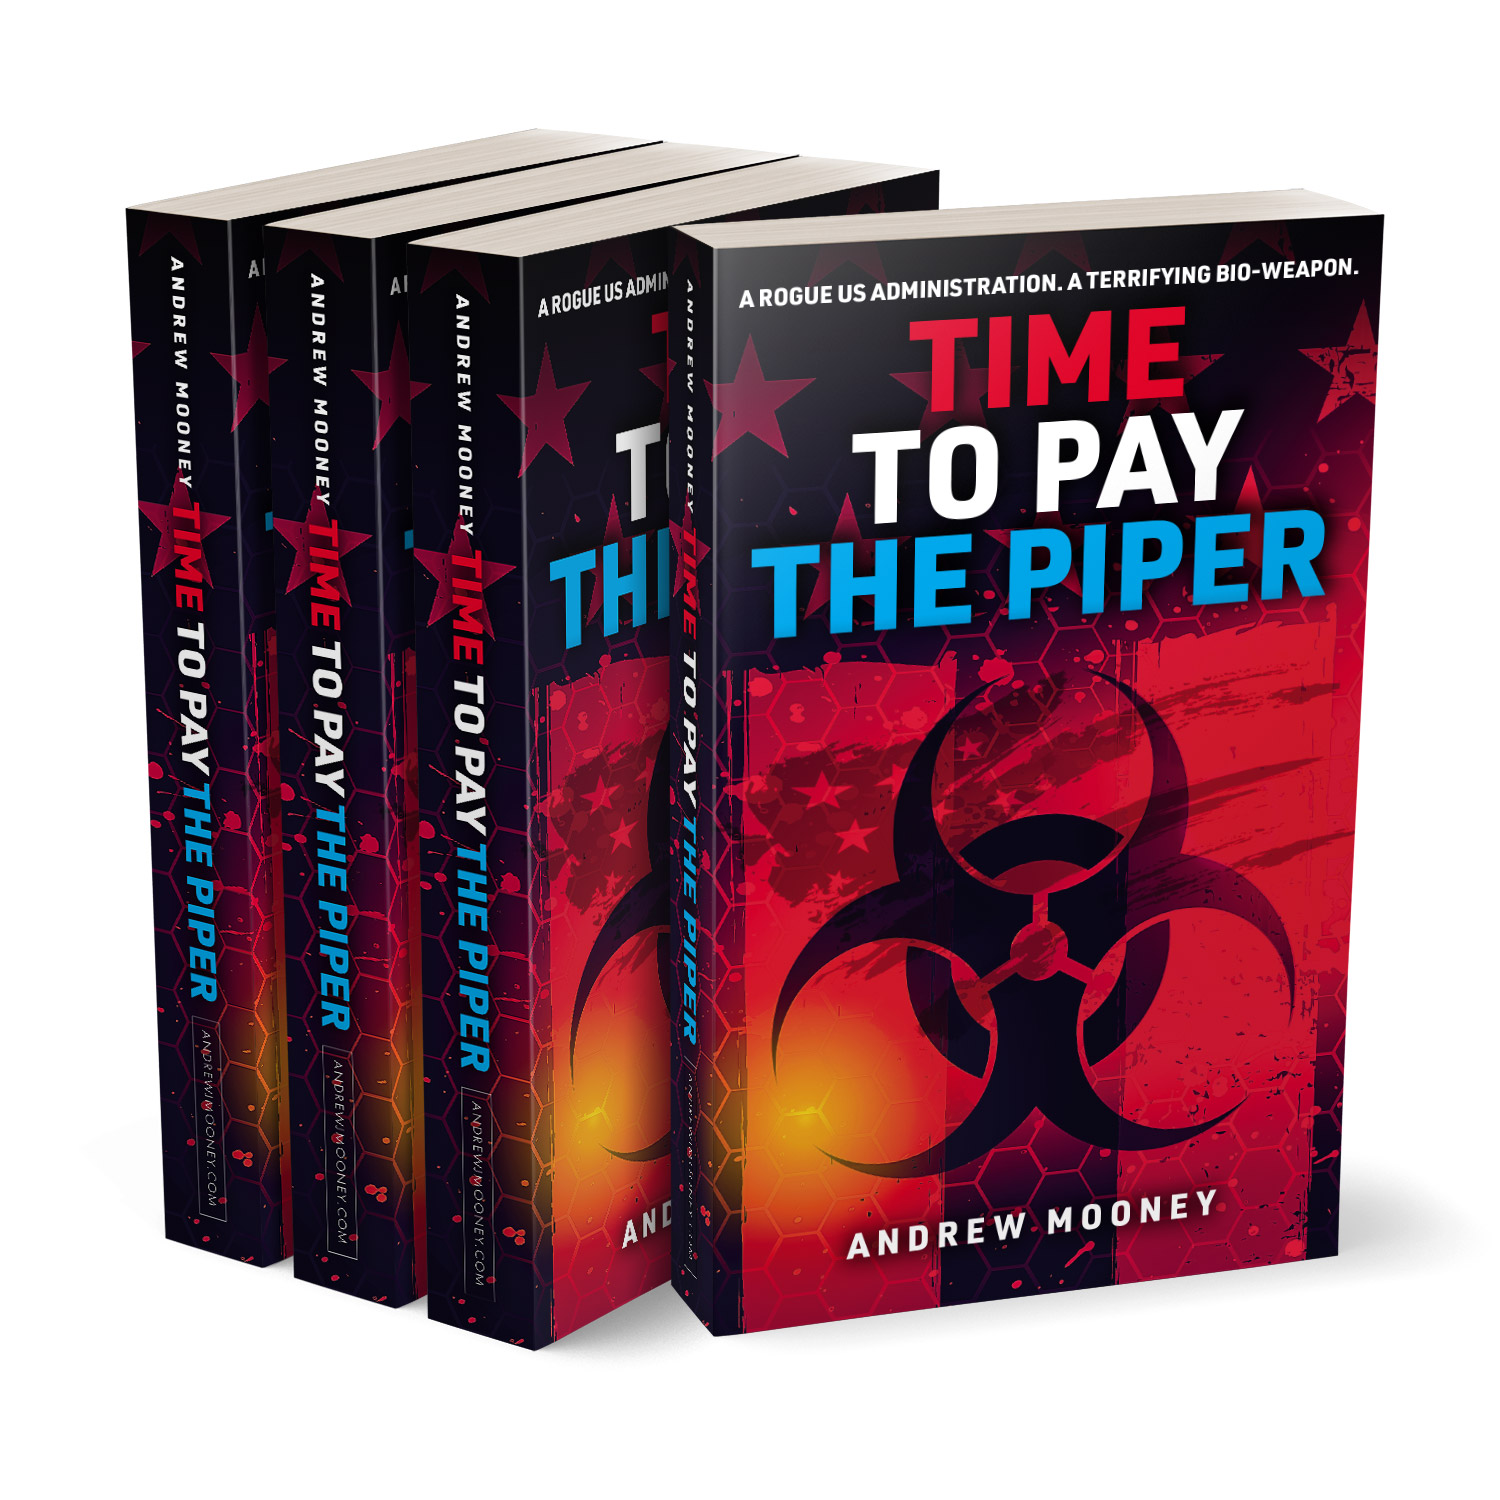 'Time To Pay The Piper' is a great bio-conspiracy thriller. The author is Andrew Mooney. The book cover design and interior formatting are by Mark Thomas. To learn more about what Mark could do for your book, please visit coverness.com.